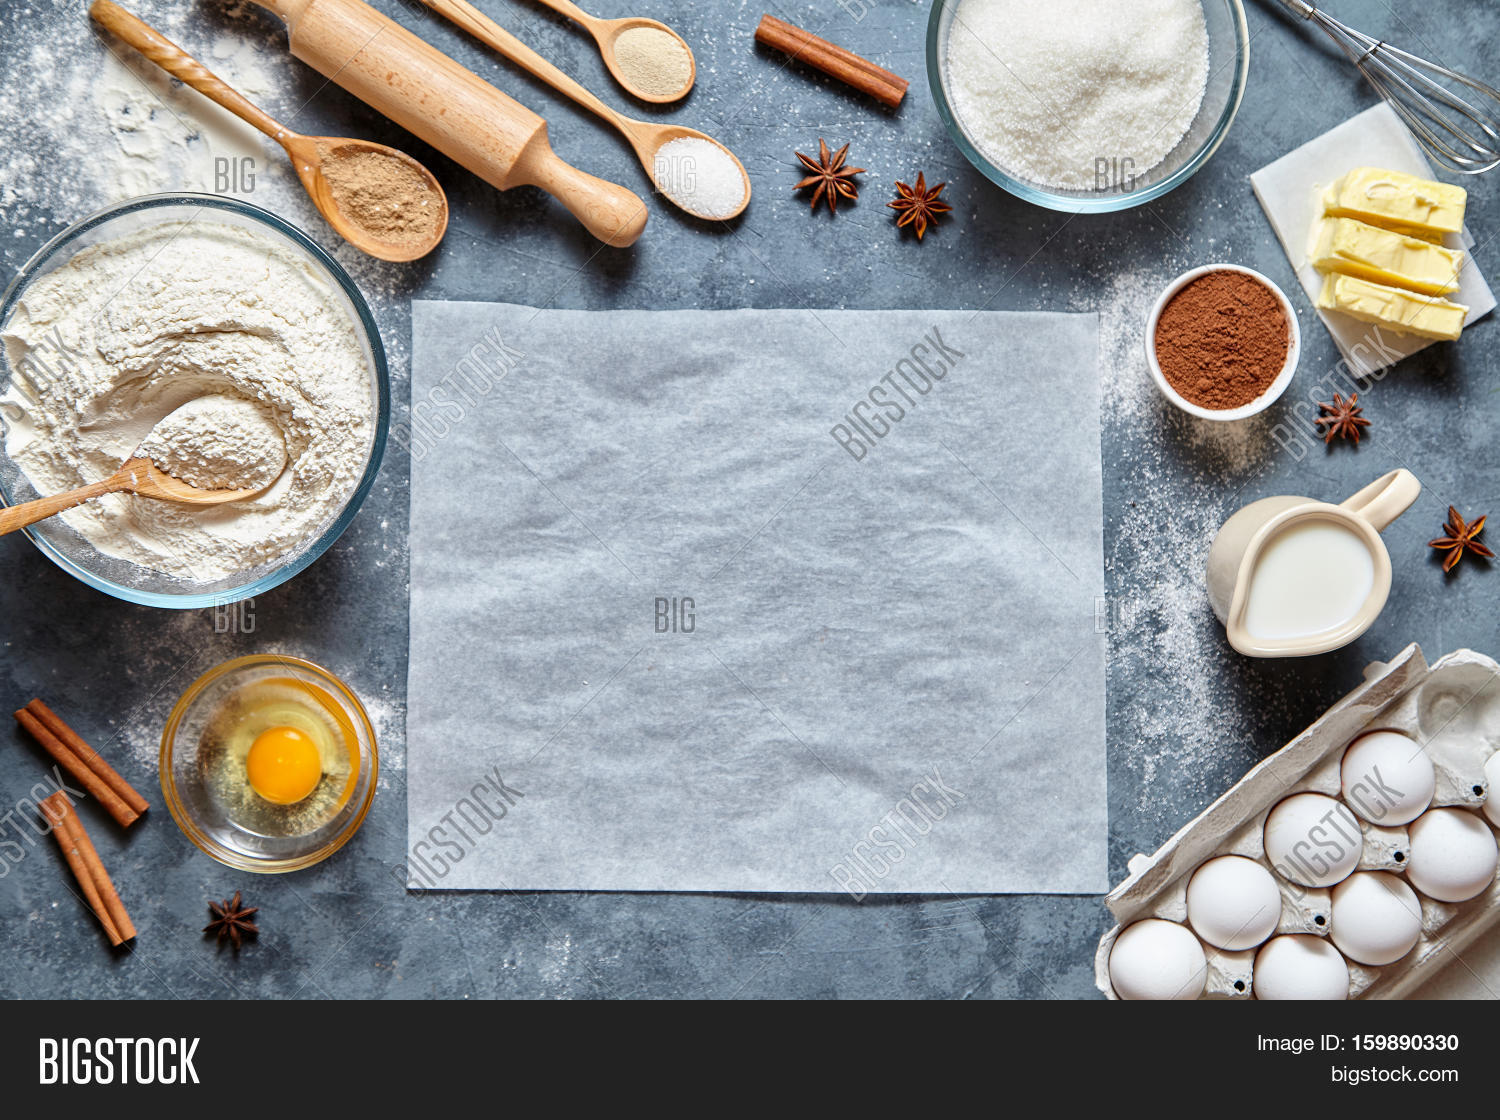 Food To Make With Flour Eggs And Milk